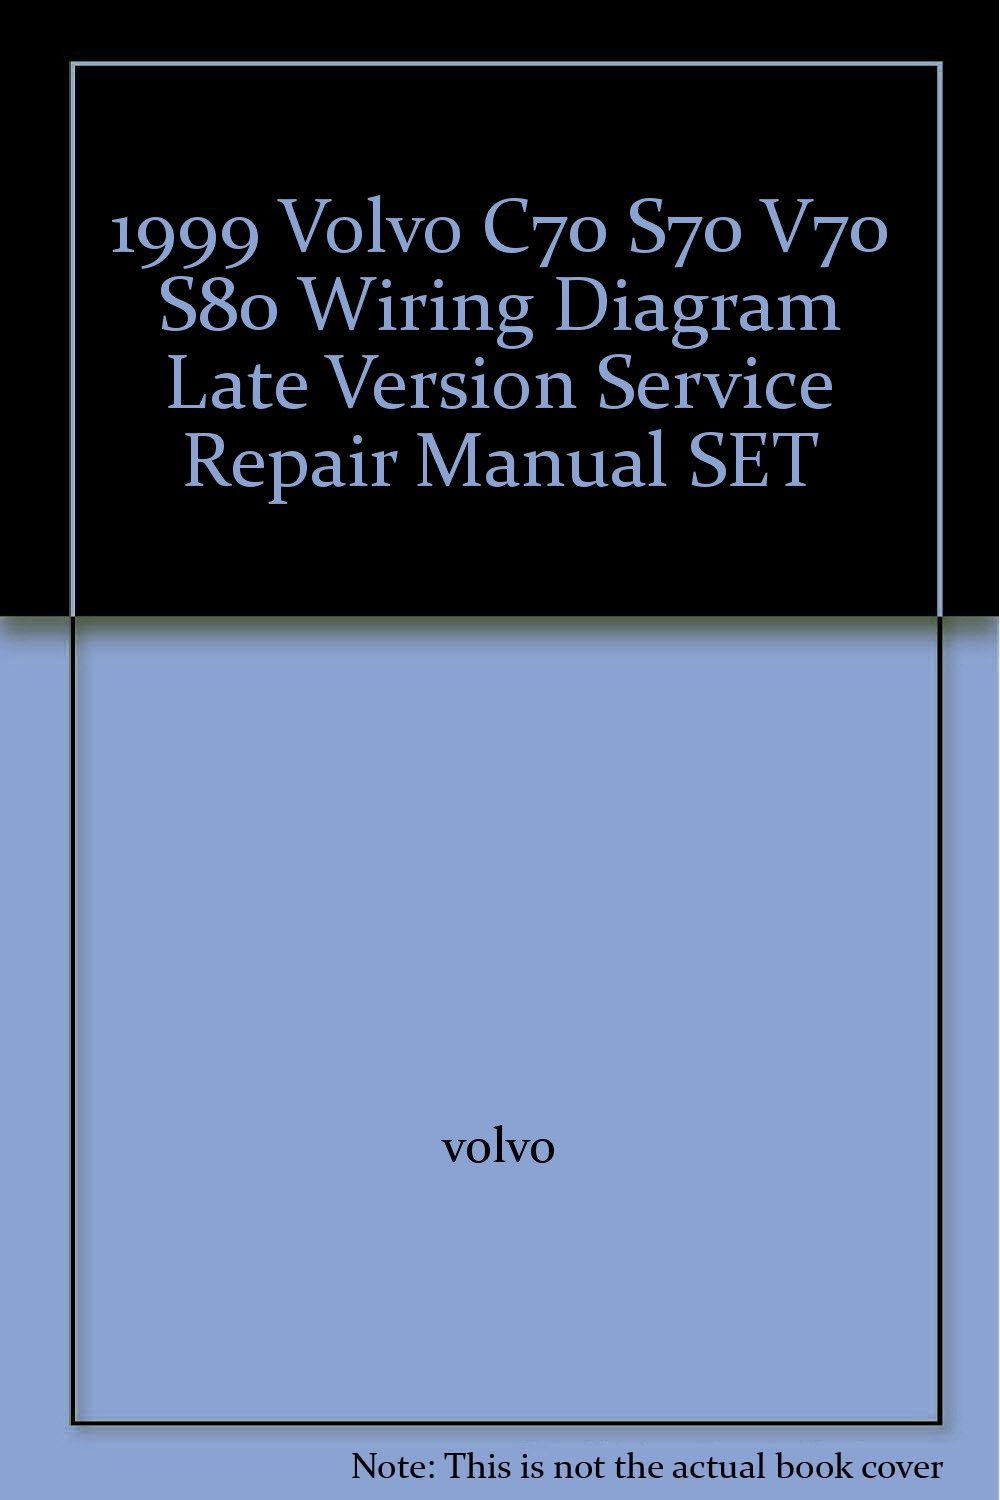 1999 Volvo C70 S70 V70 S80 Wiring Diagram Late Version Service Repair Manual  SET: volvo: Amazon.com: Books